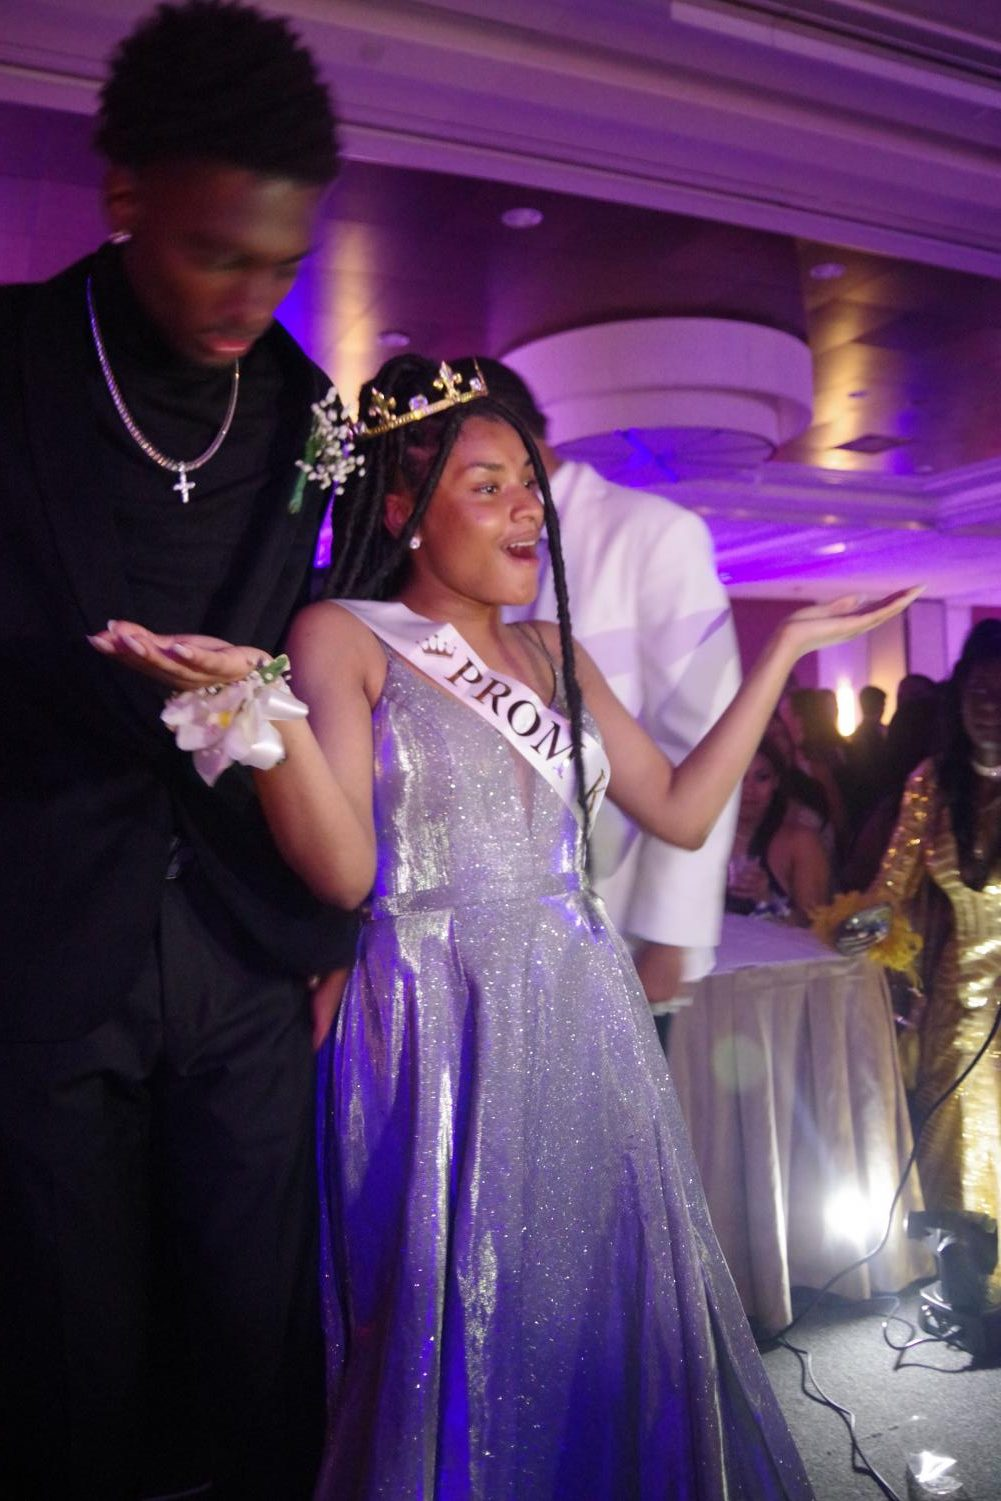 Senior Sean Fontno won Prom King and senior Nia Callender won Prom Queen.